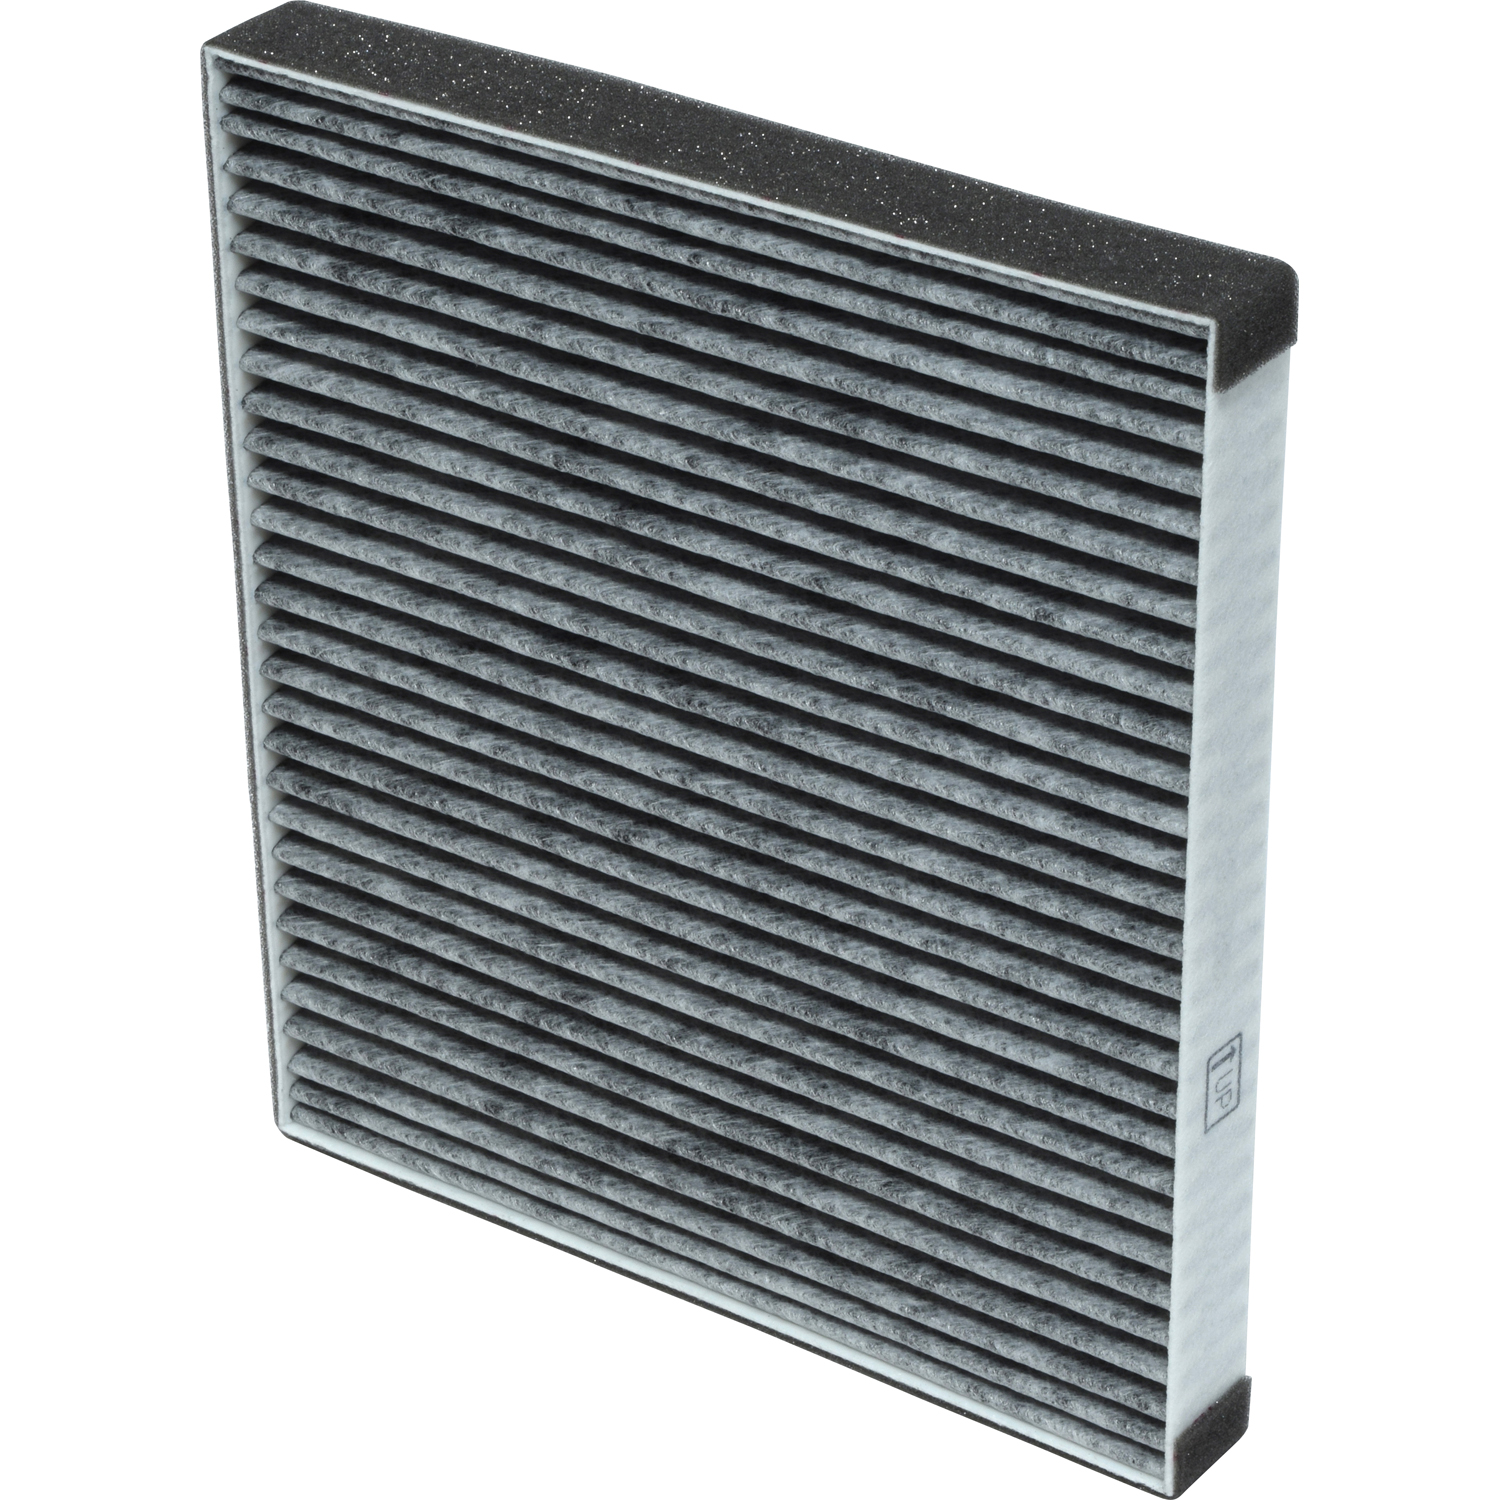 Charcoal Cabin Air Filter FI 1335C